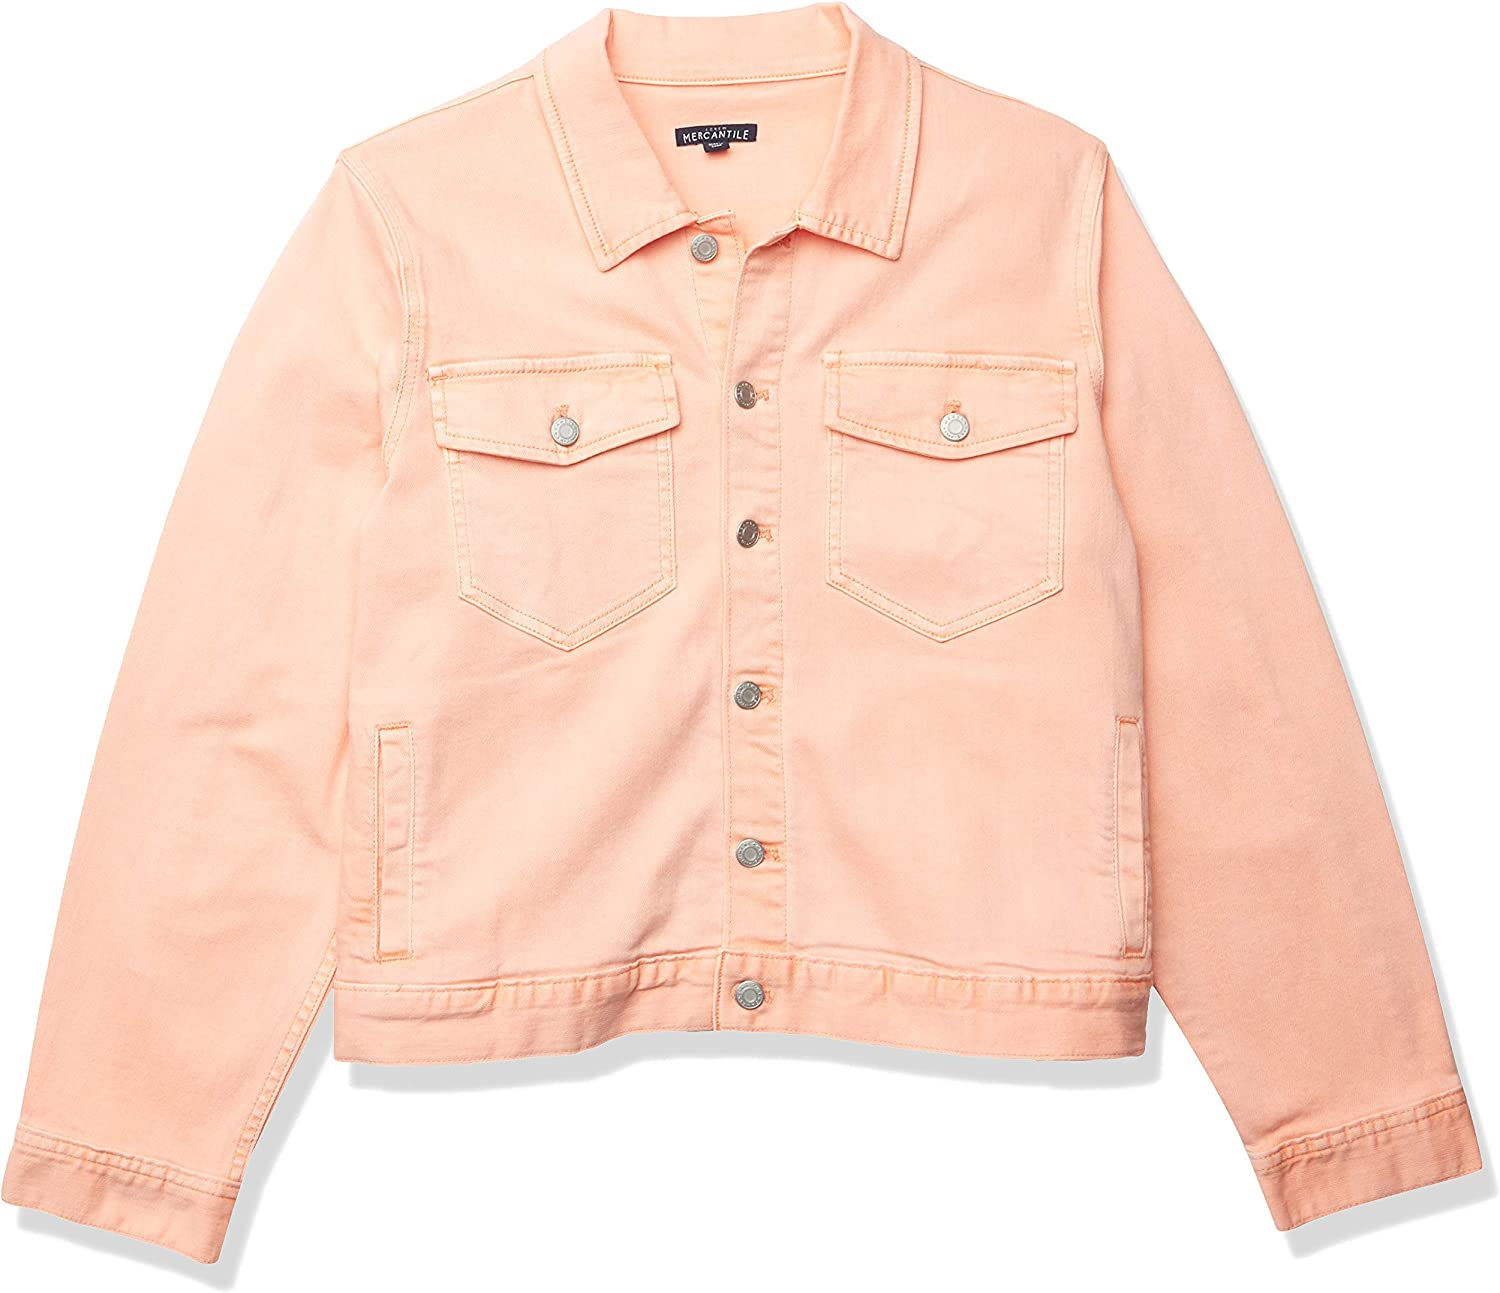 J.Crew Mercantile Special price womens Cropped Garment-dyed Jacket Denim 5 popular